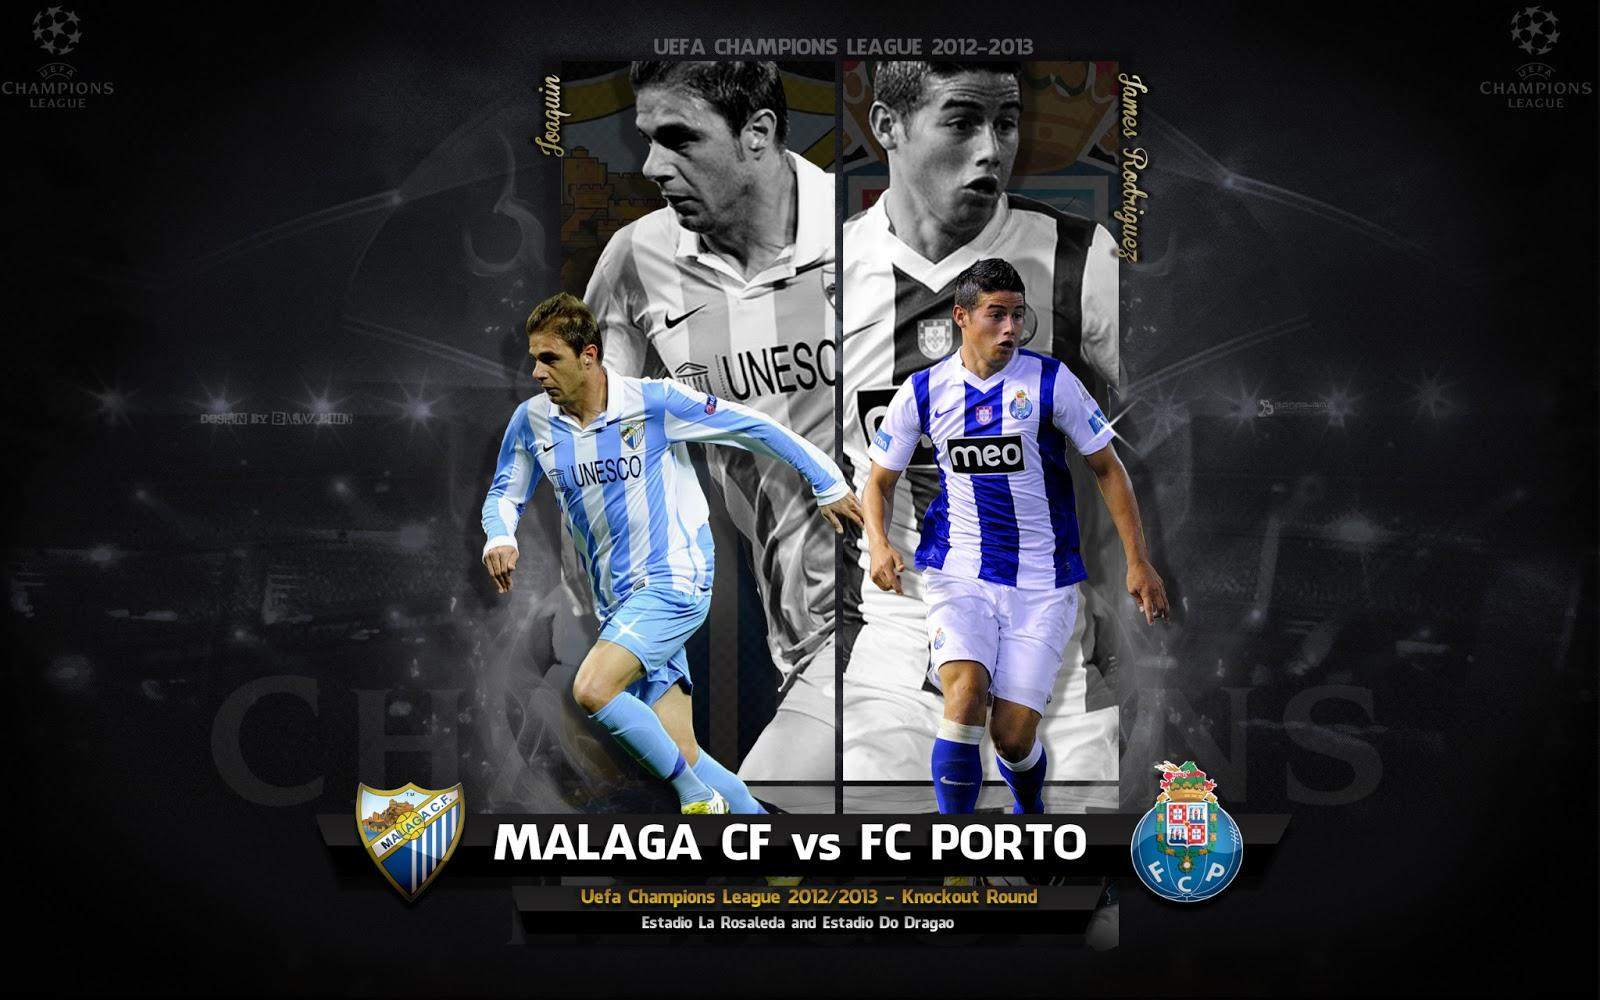 all new pix1: Wallpapers Malaga Cf